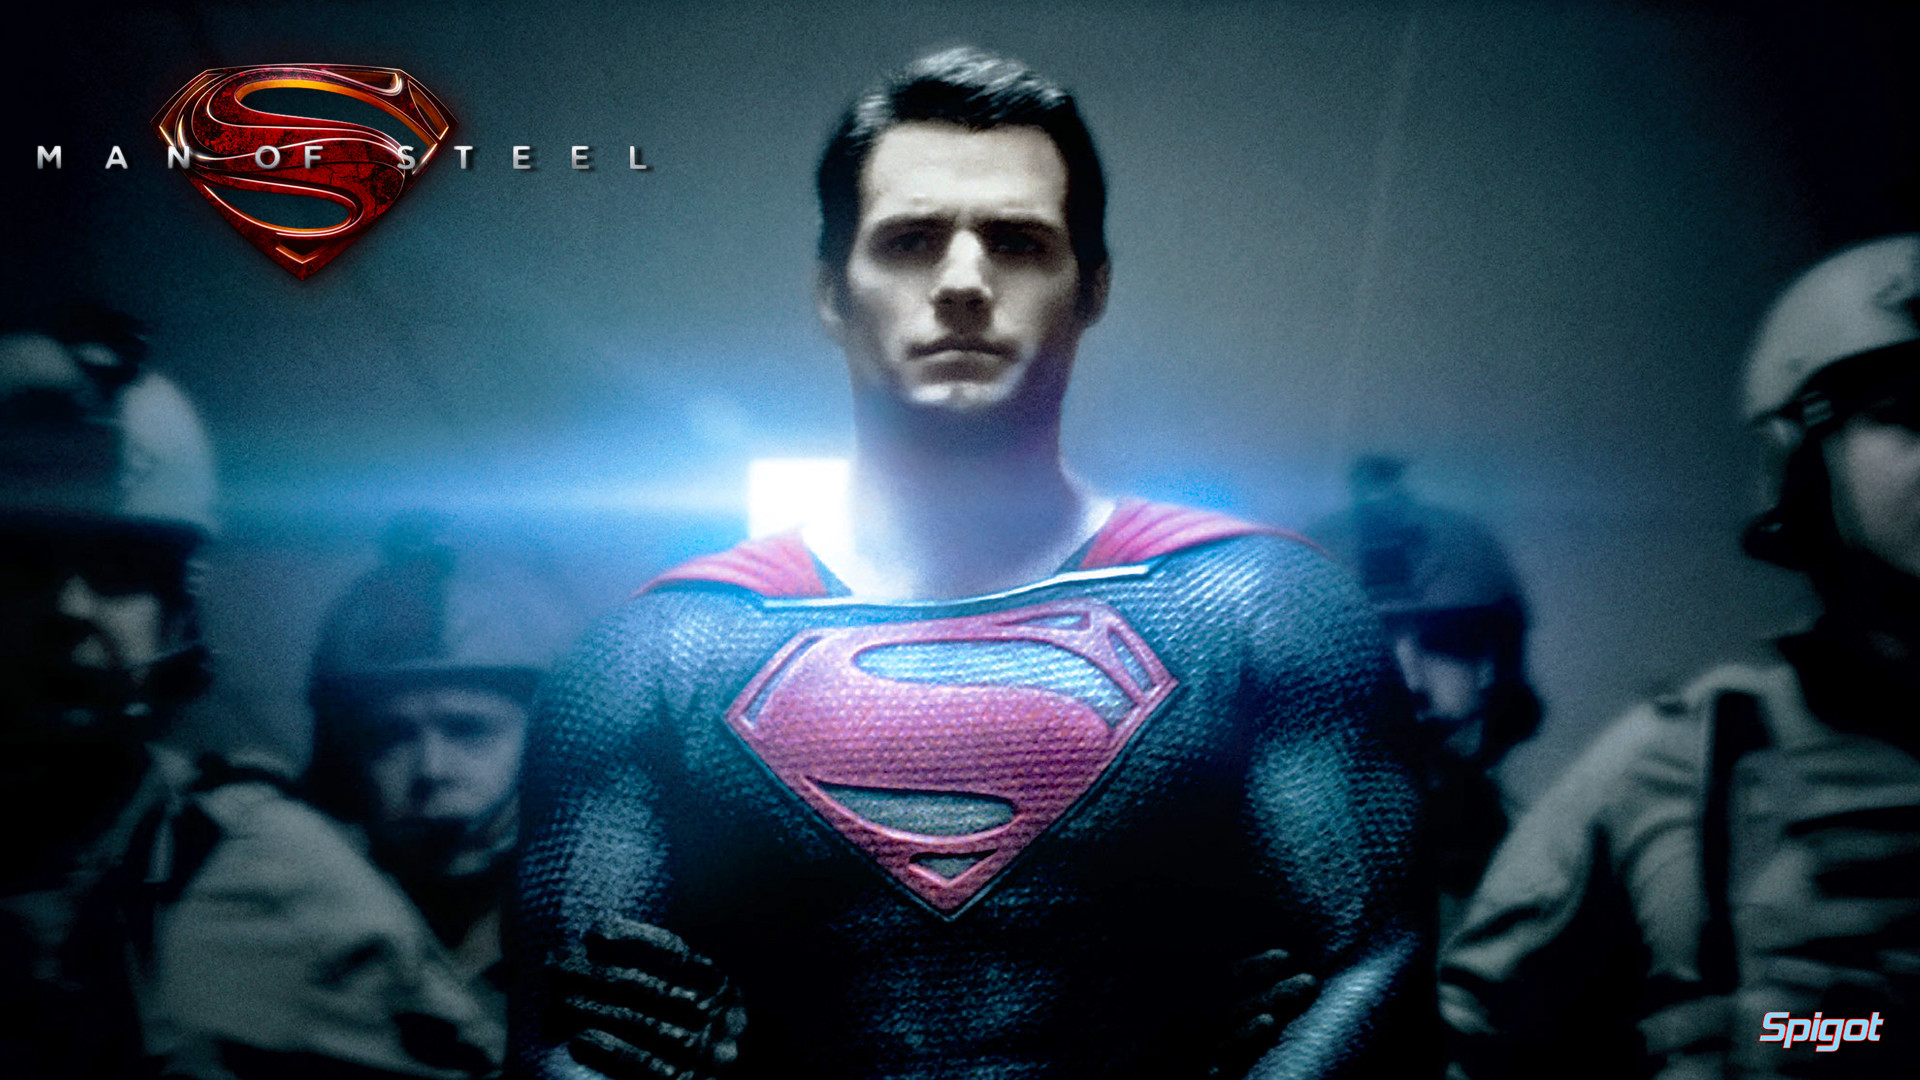 1920x1080 As requested here are some more Man Of Steel Wallpapers 🙂